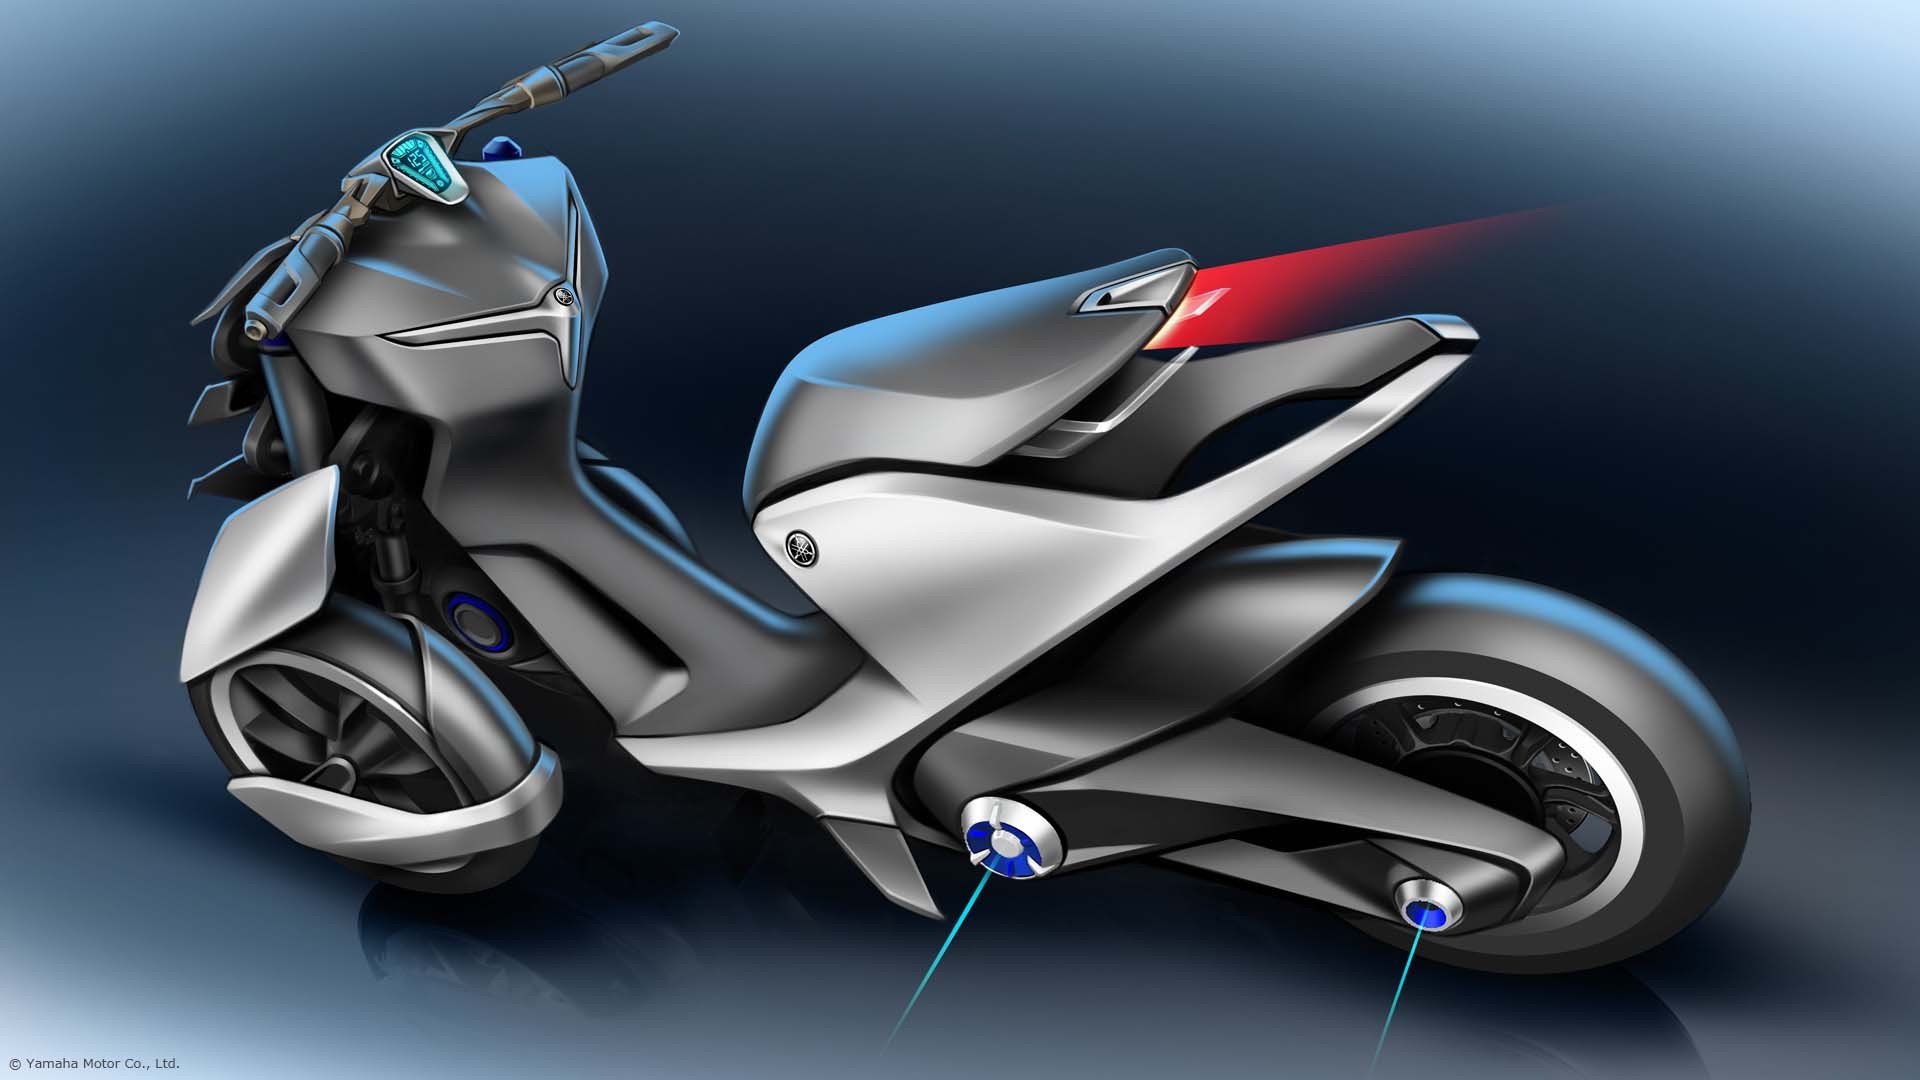 Google chrome themes yamaha - 225 Best Images About Bikes On Pinterest Peugeot Concept Motorcycles And Bikes